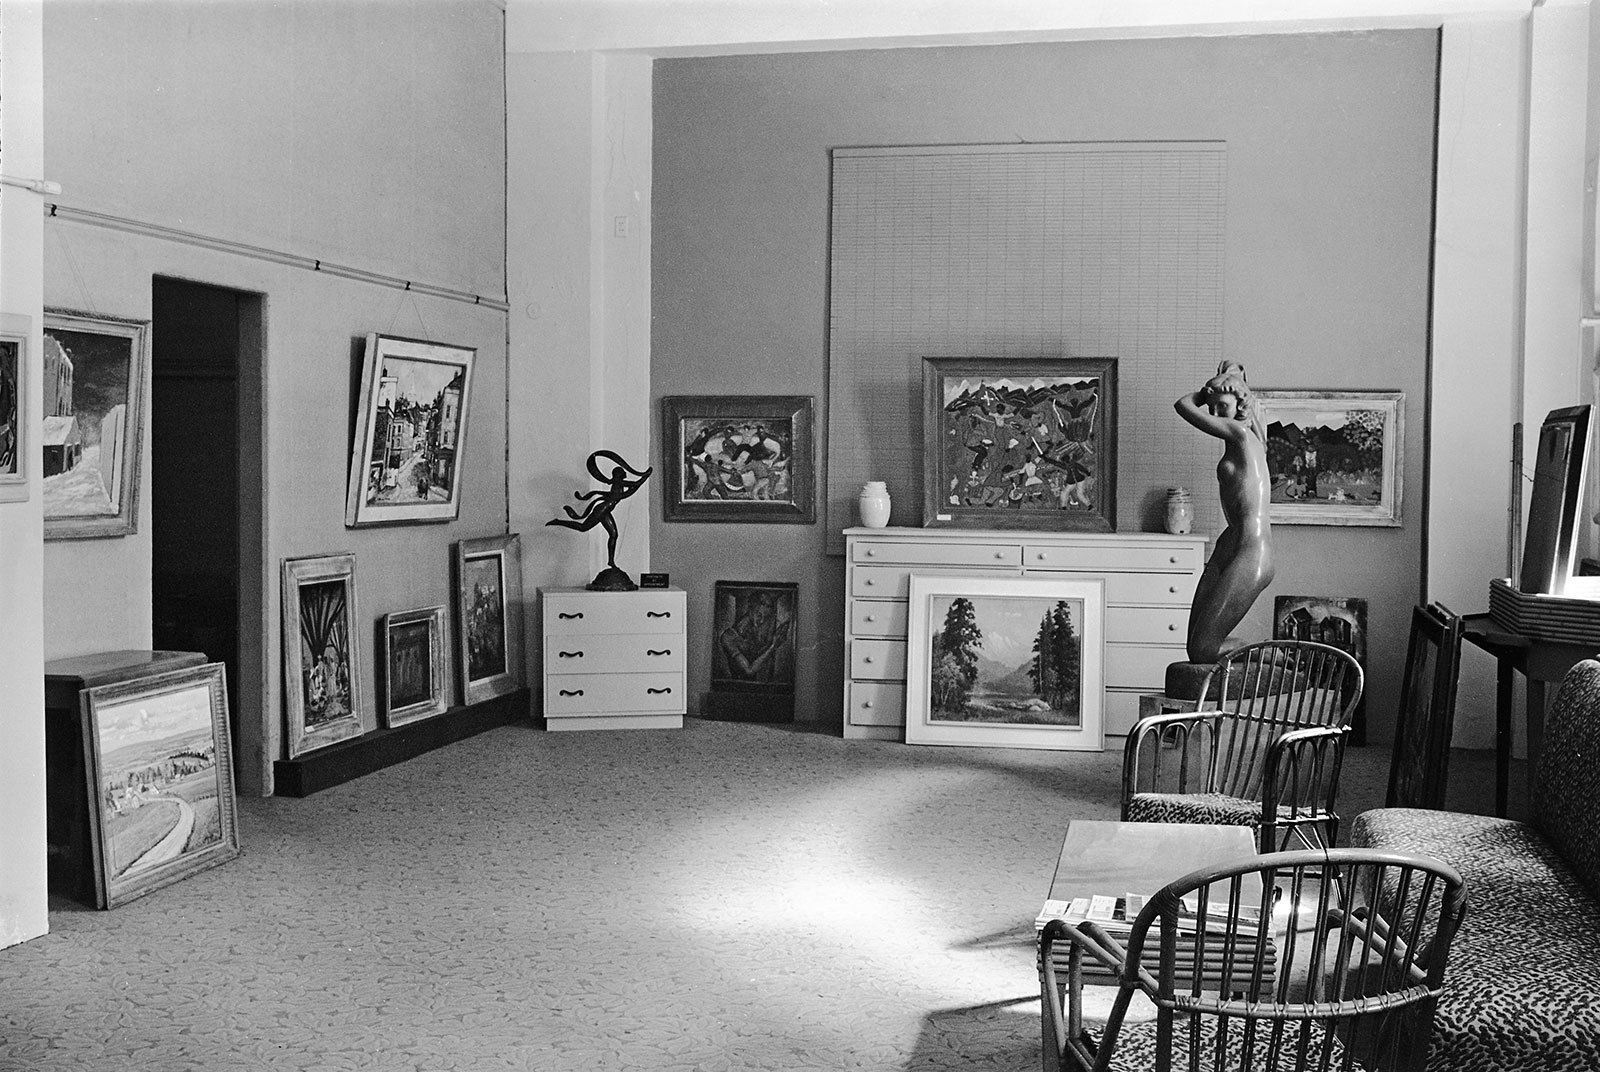 Photograph of Washington Art Galleries